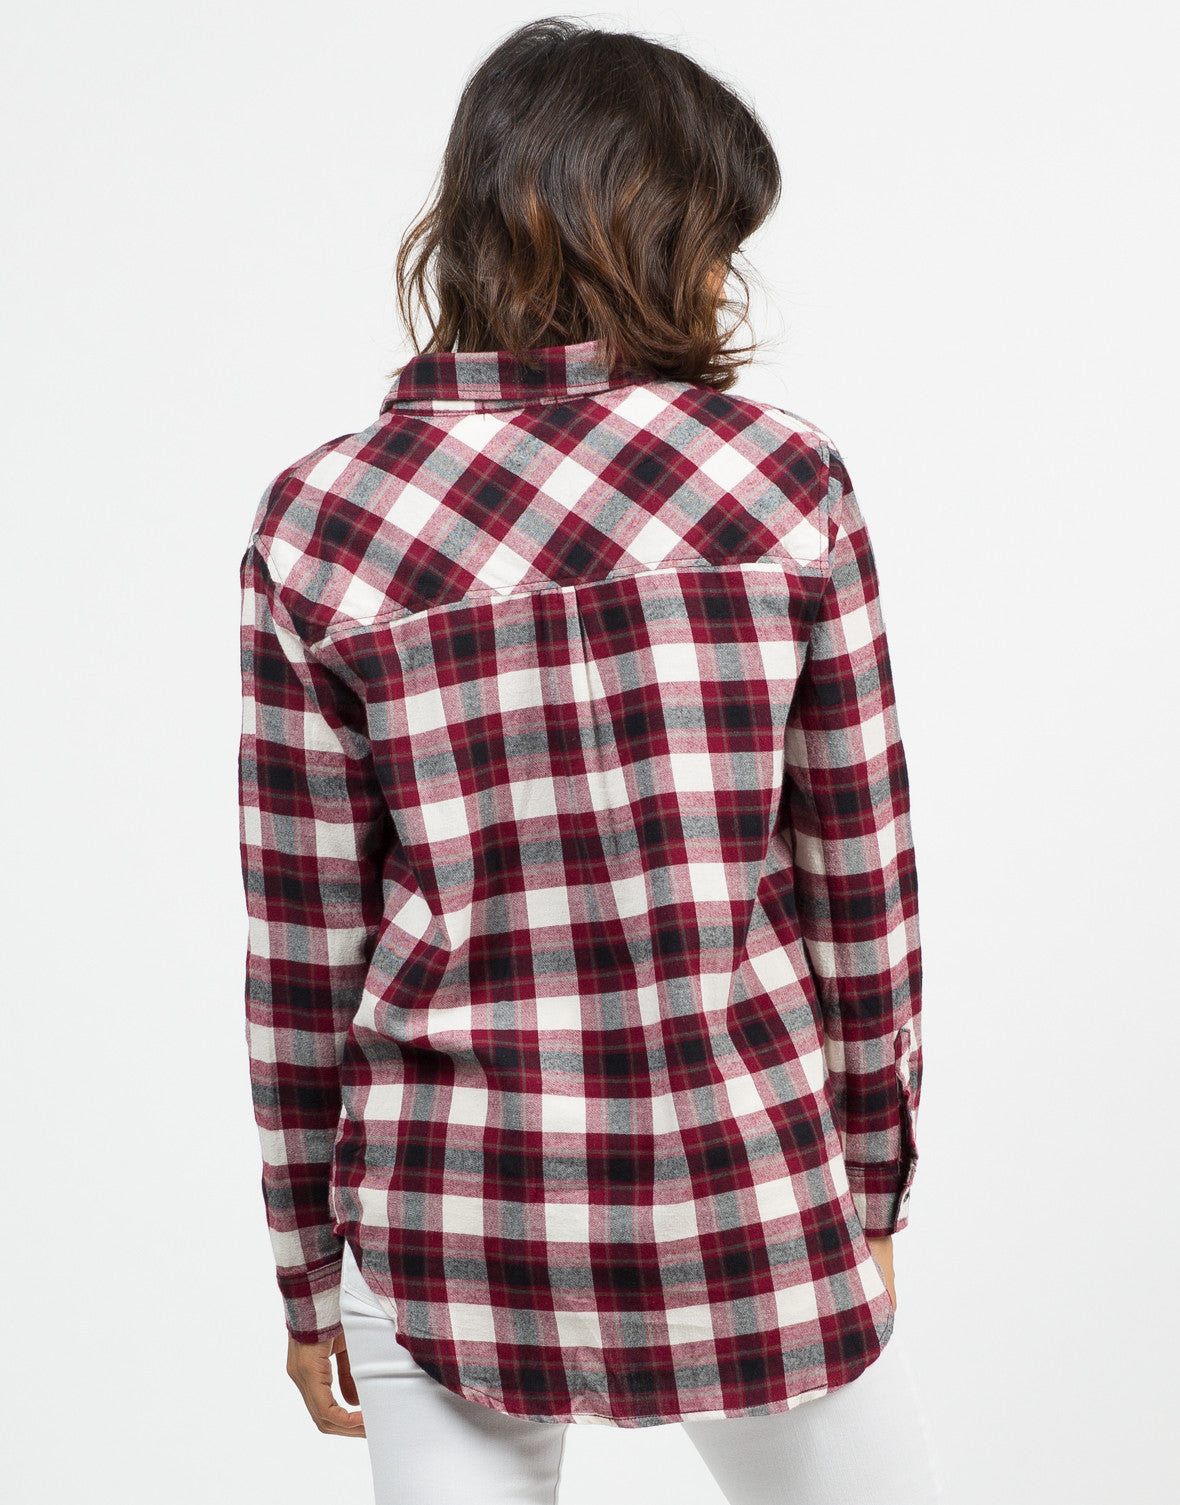 Back View of Flannel Checker Shirt